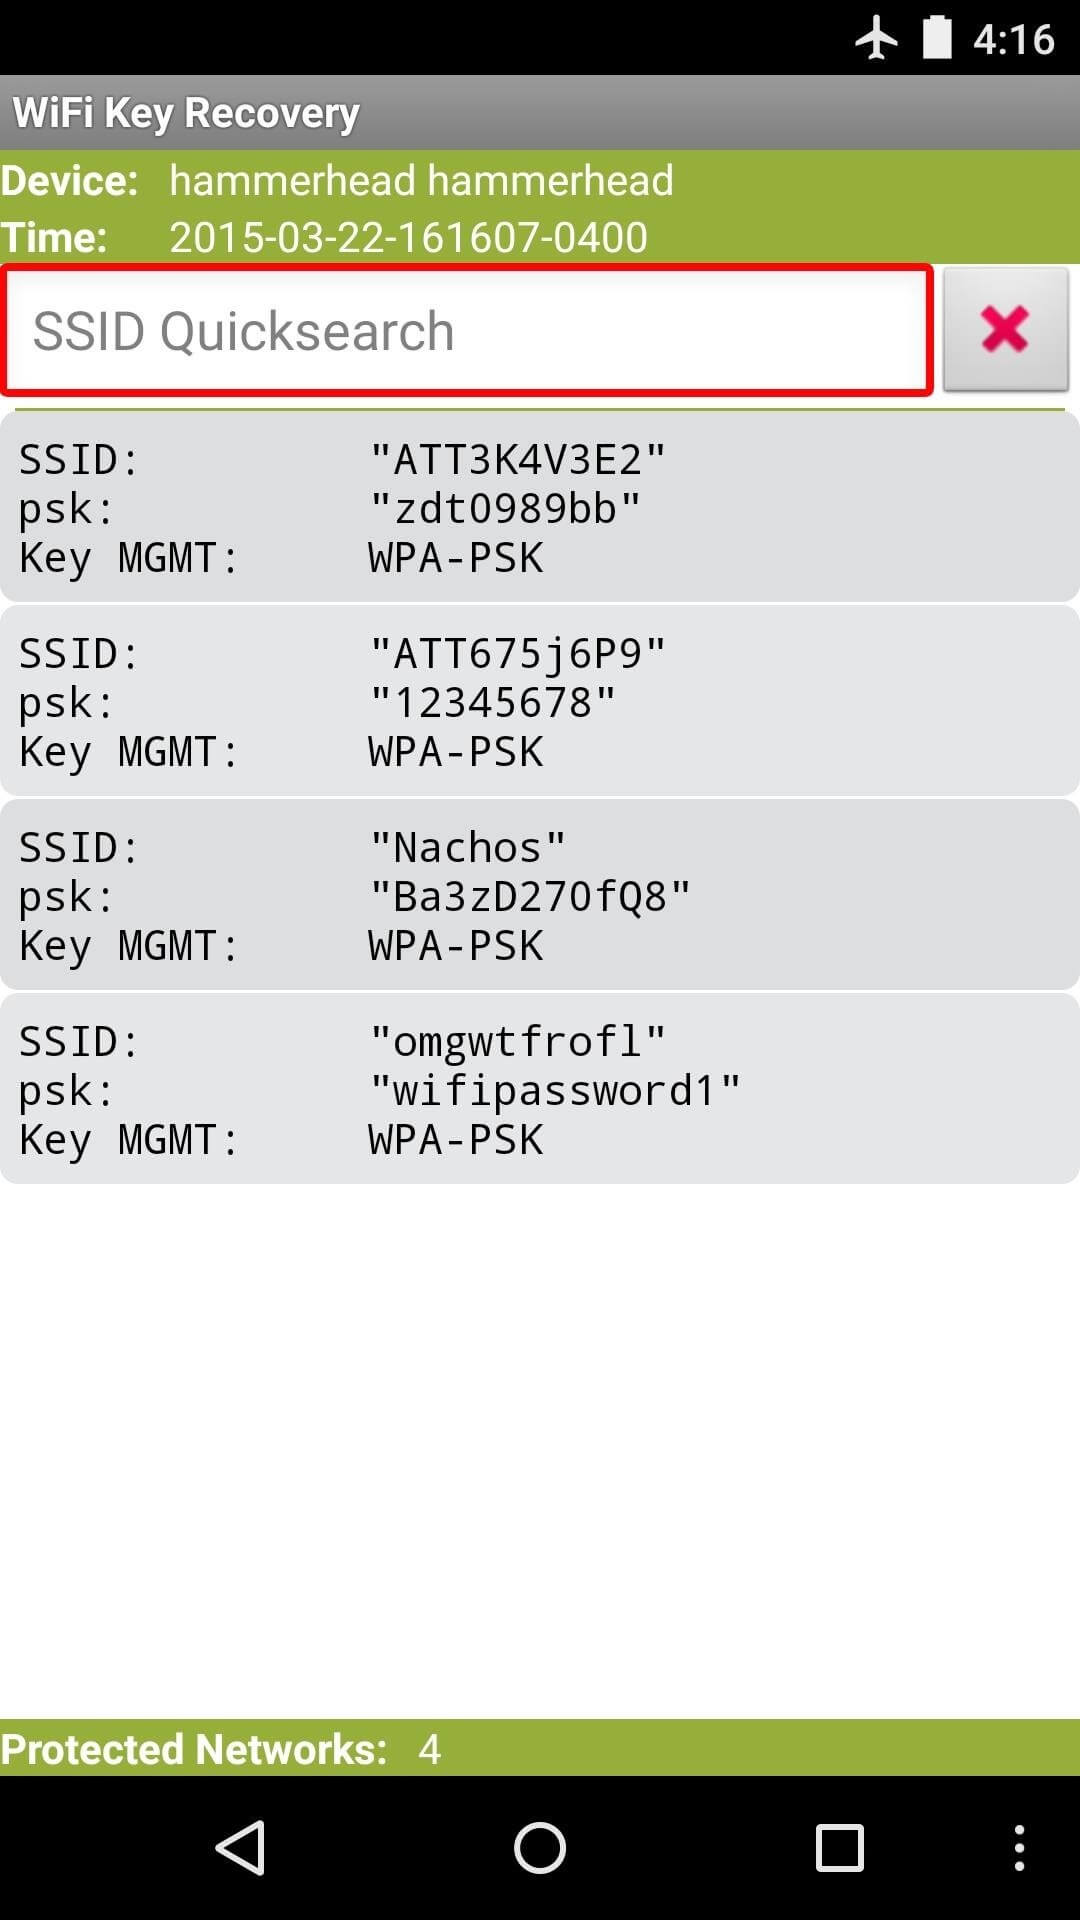 View Saved WiFi Passwords-SSID Quicksearch